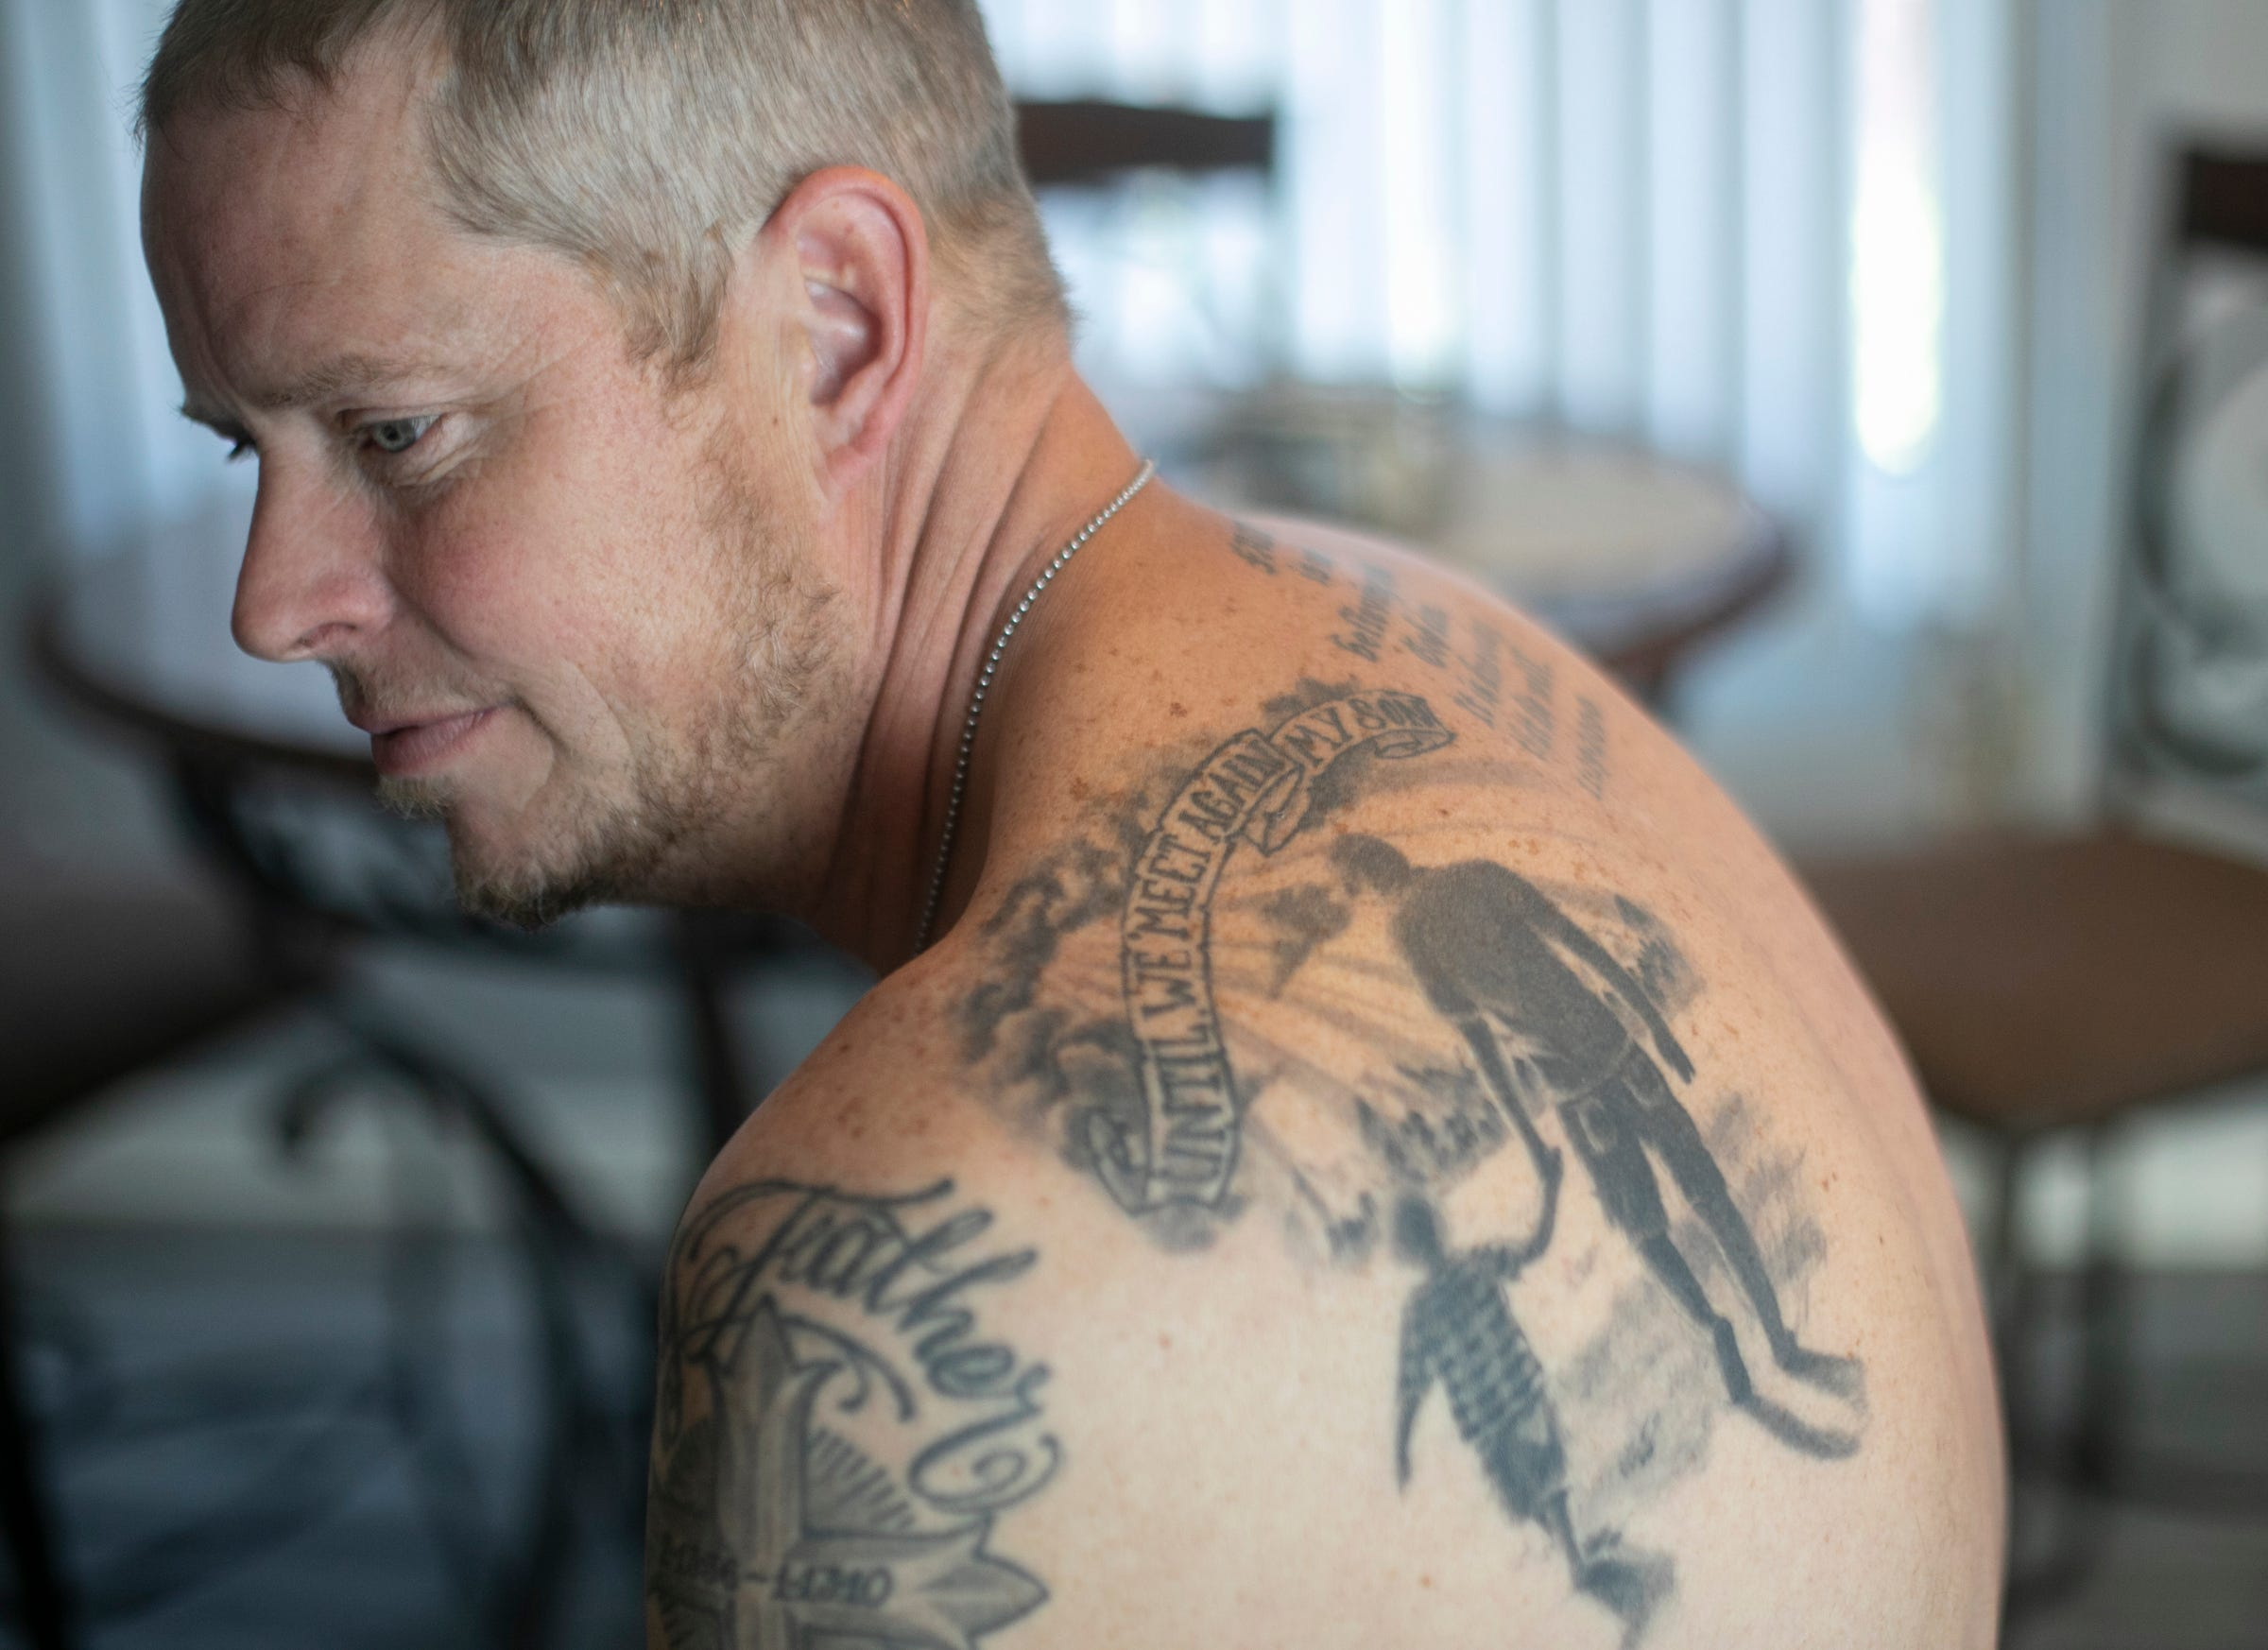 Andy Hopson, 51, of Livonia, a recovering addict, talks about the loss of his son Dakota, who died on May, 5, 2016, of a heroin overdose. He had many tattoos memorializing his son, including a likeness of them walking hand-in-hand.